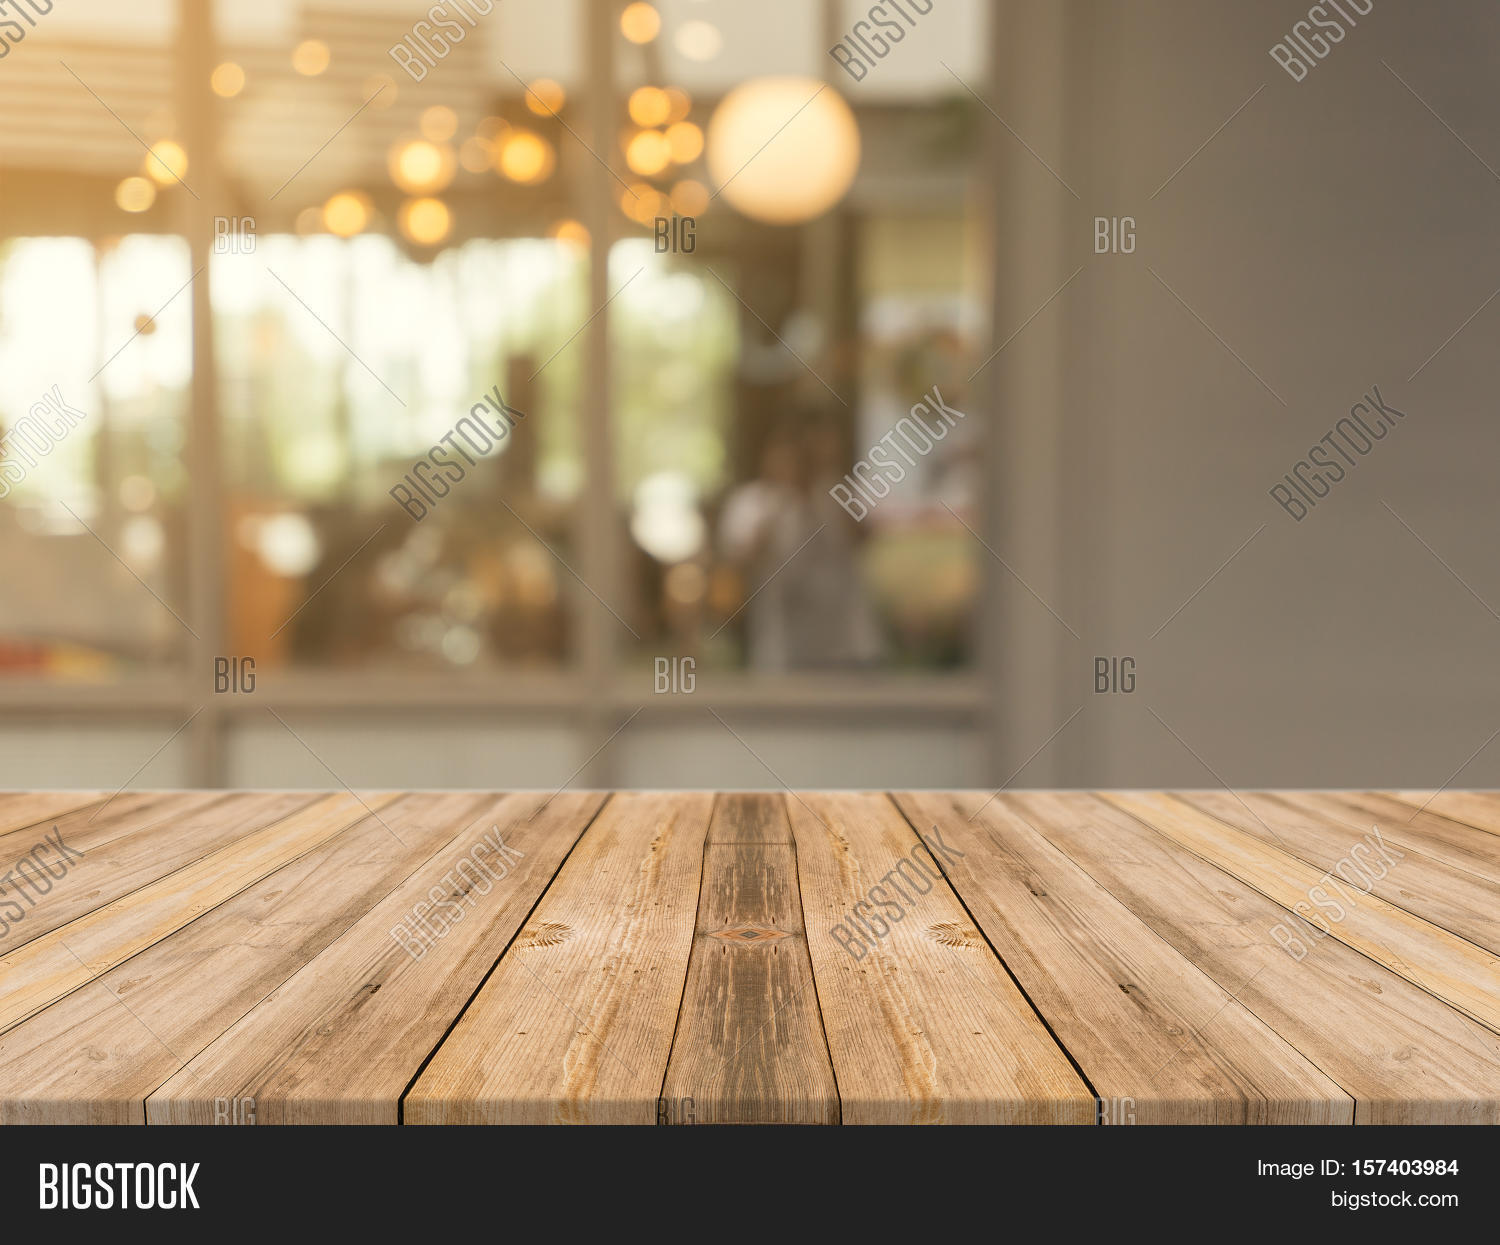 table background kitchen wooden board empty table top on of blurred background perspective brown wood over blur board empty image photo free trial bigstock